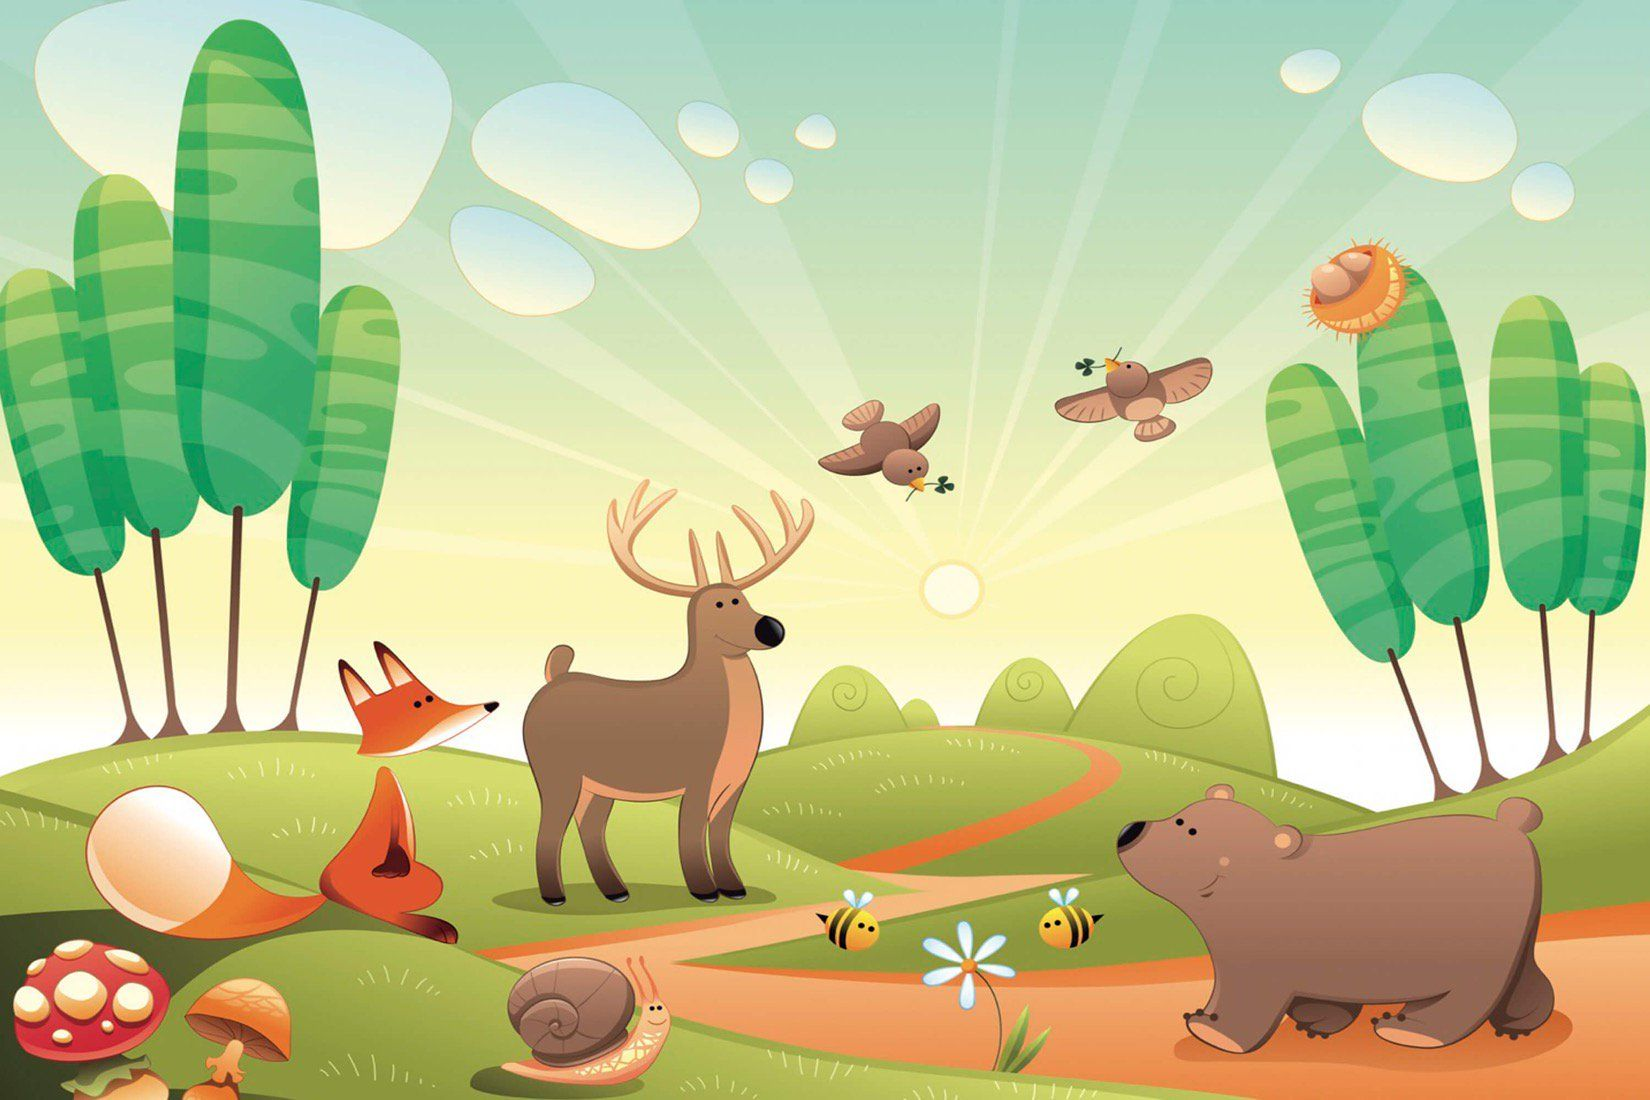 Cute Woodland Animals Wallpaper Mural Animal wallpaper